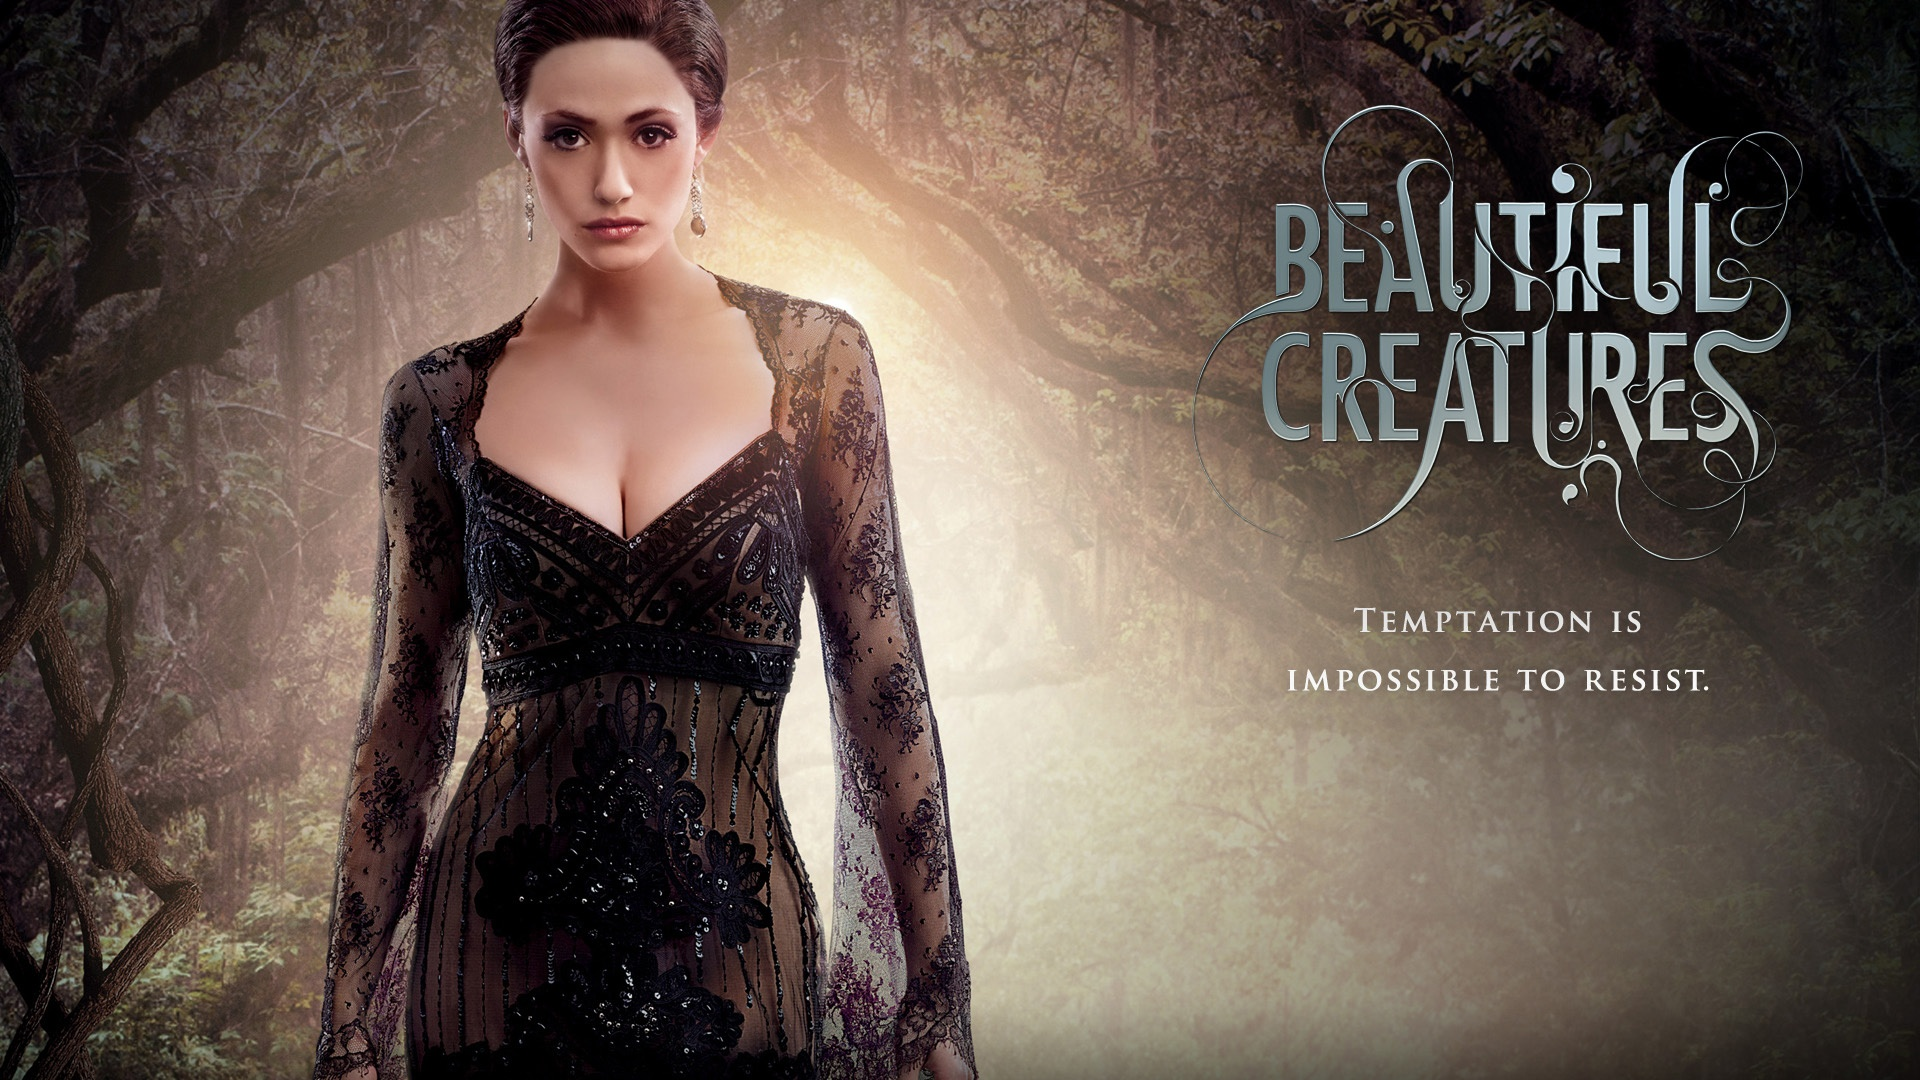 Emmy rossum in beautiful creatures wallpapers in jpg format for emmy rossum in beautiful creatures wallpapers voltagebd Images